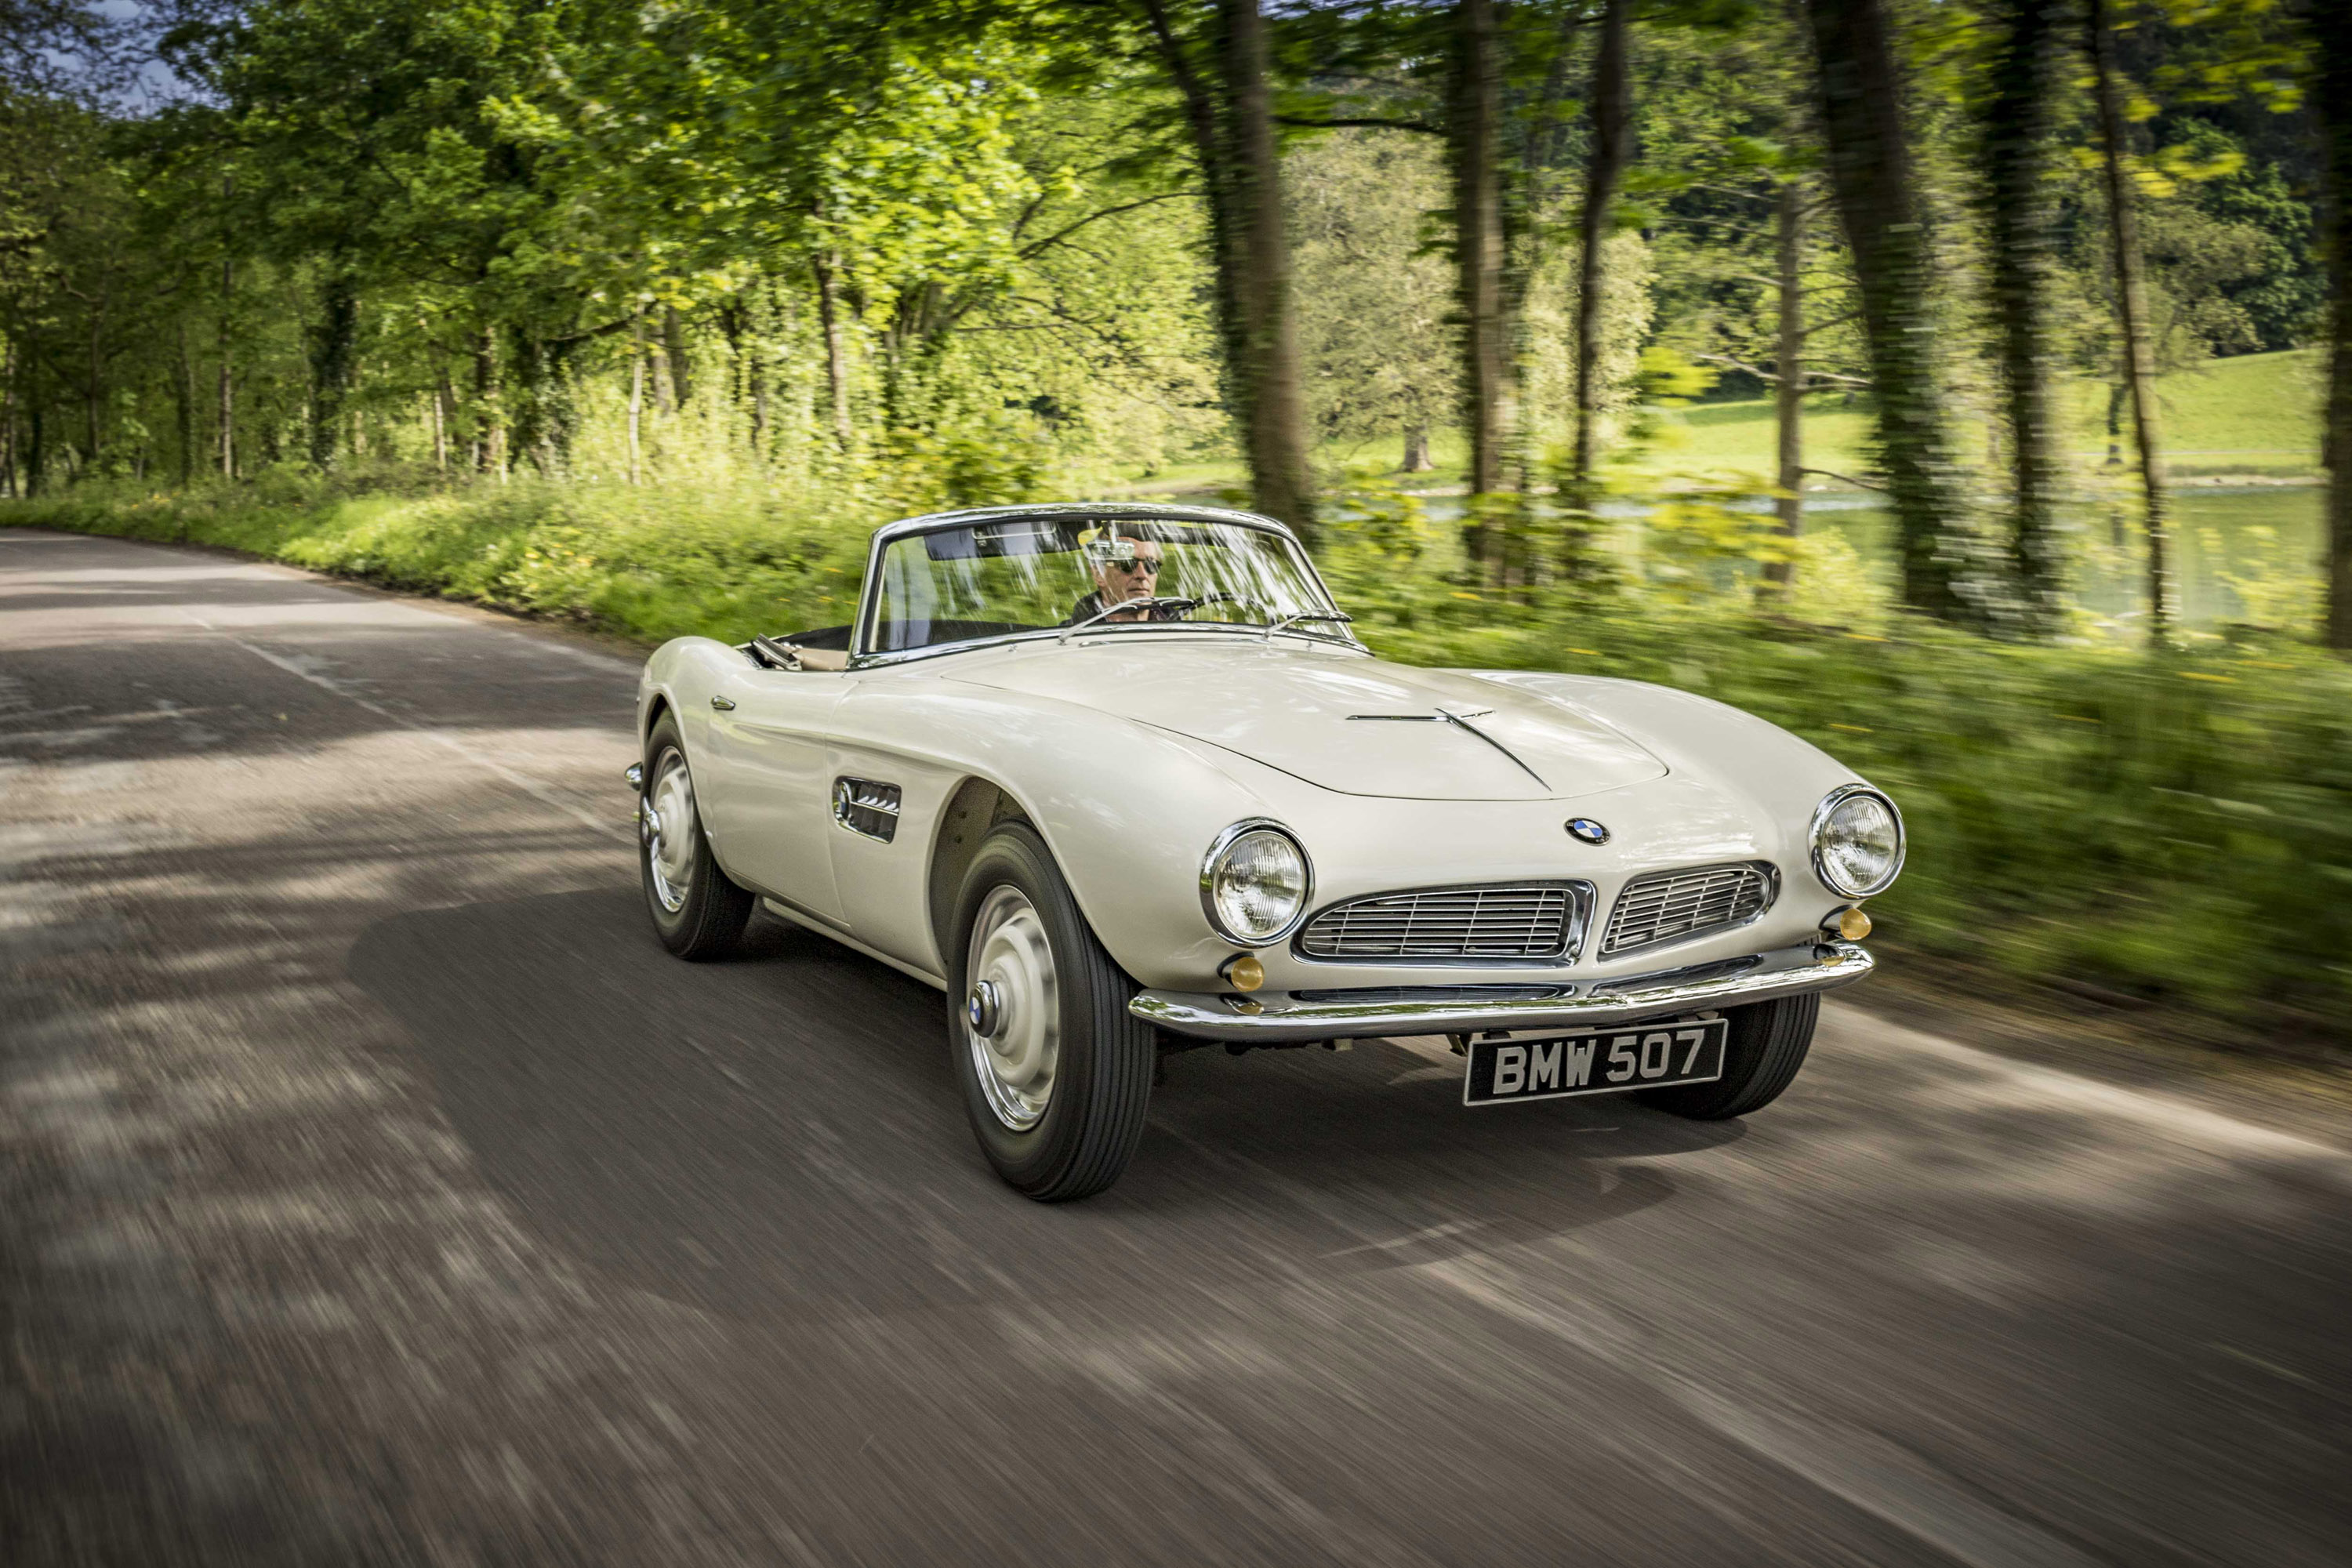 Goodwood Festival Of Speed Opens With Run Of 1957 Bmw 507